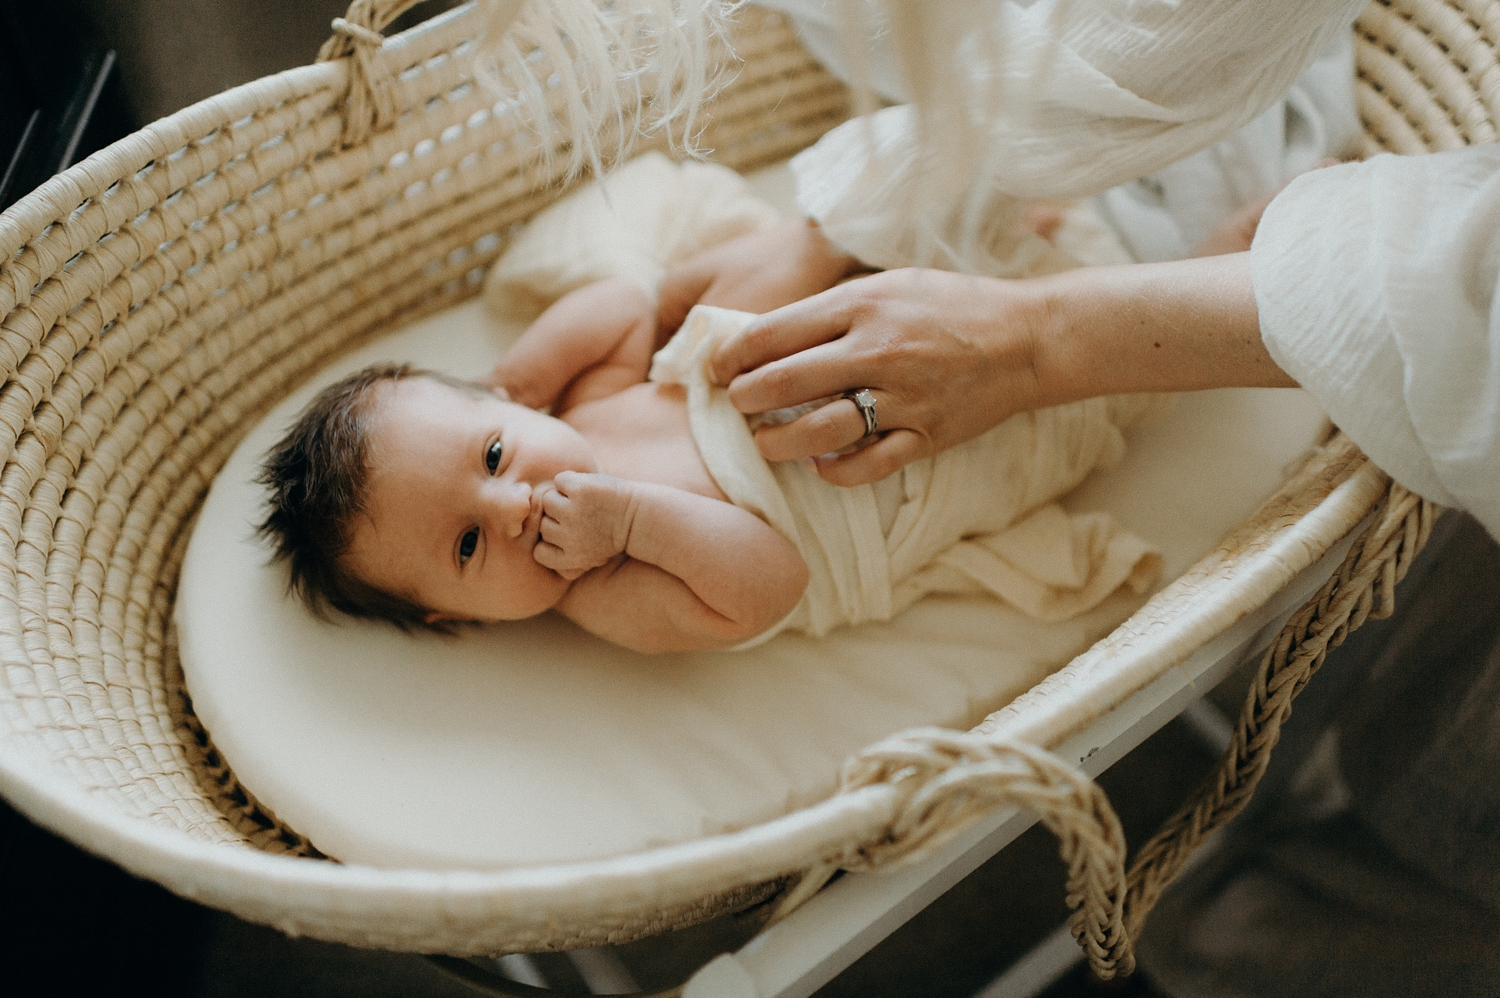 newborn baby in basket with mother nearby